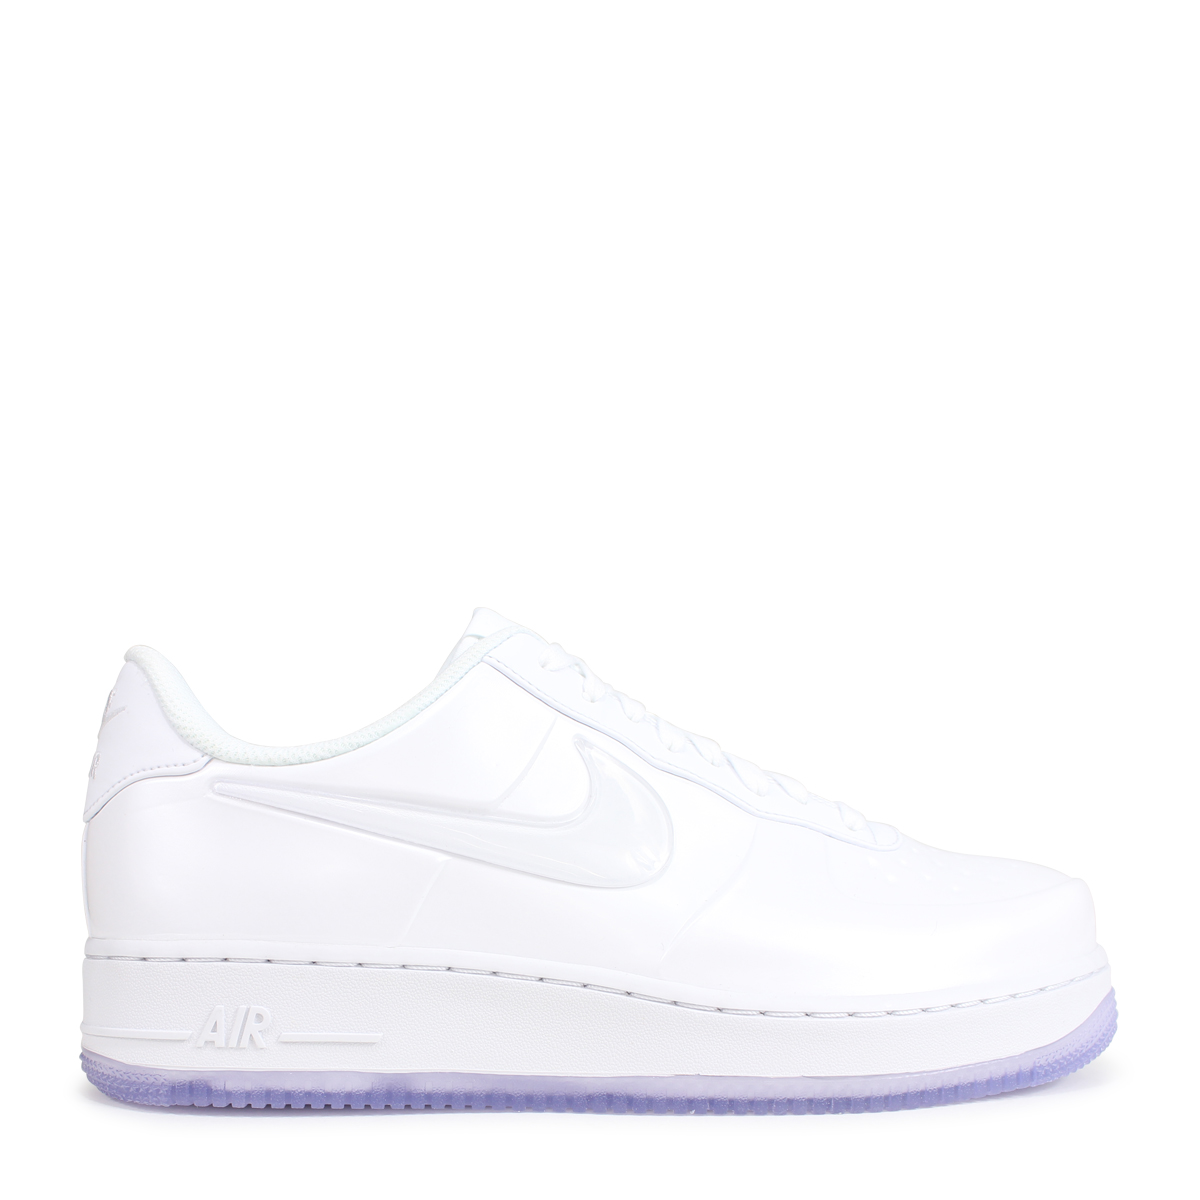 a12ccb831265 NIKE AIR FORCE 1 FOAMPOSITE PRO CUP AF1 Nike air force 1 sneakers men AJ3664 -100 white  load planned Shinnyu load in reservation product 7 19 containing   ...